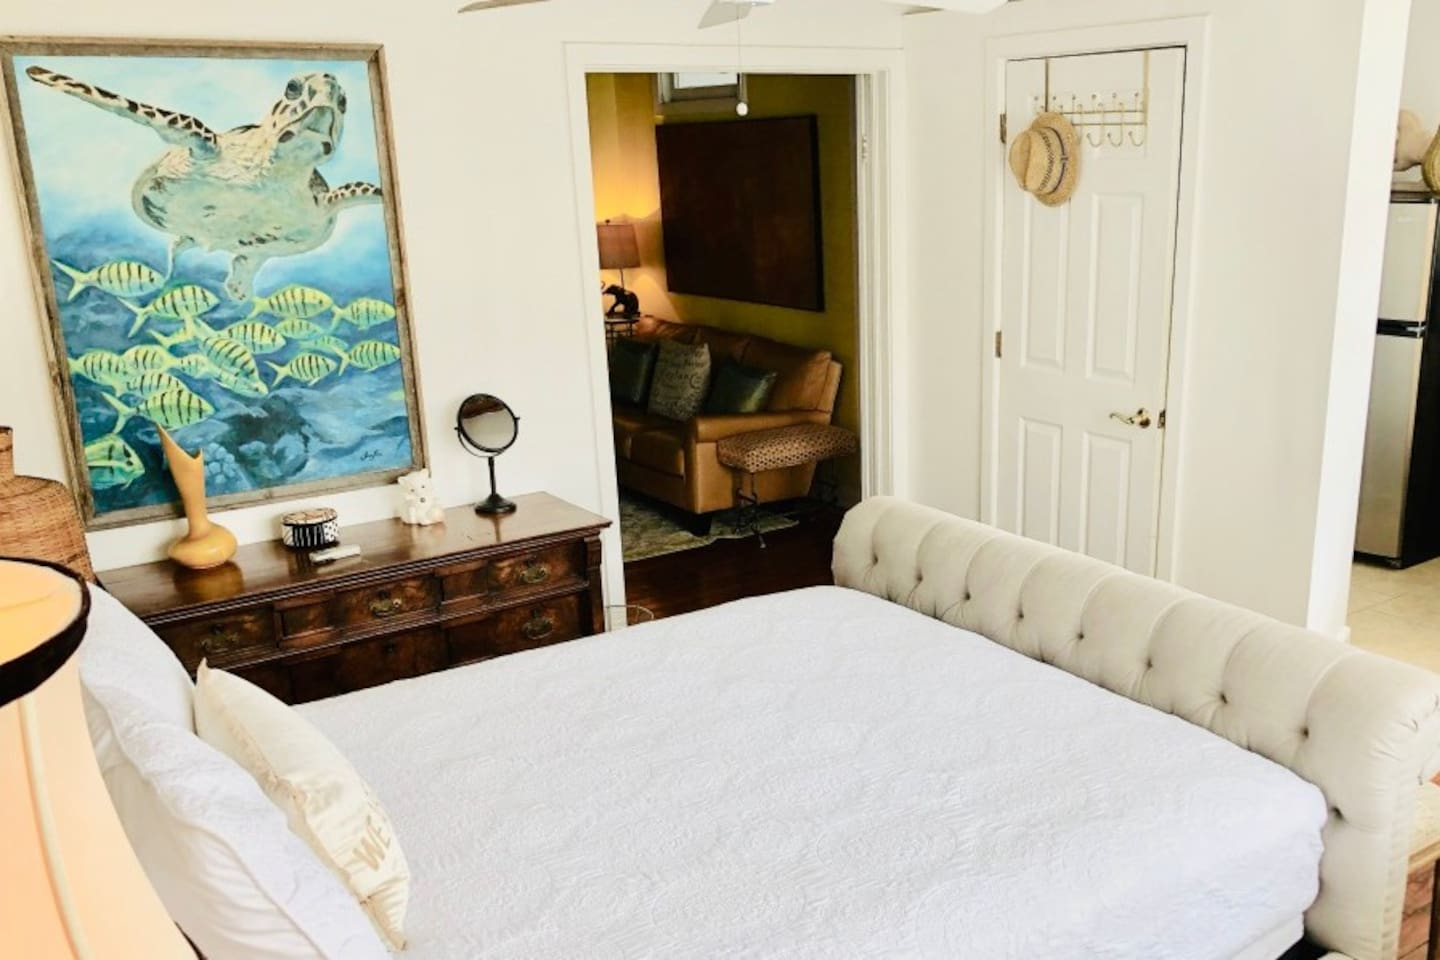 Queen sized bed with lots of windows & natural light. Doors open showing Living Room. Closet doors & just around the corner is the kitchen & bathroom with 1950's Sarasota School of Architecture details. Painting by Sarasota Chalk Festival Artist.